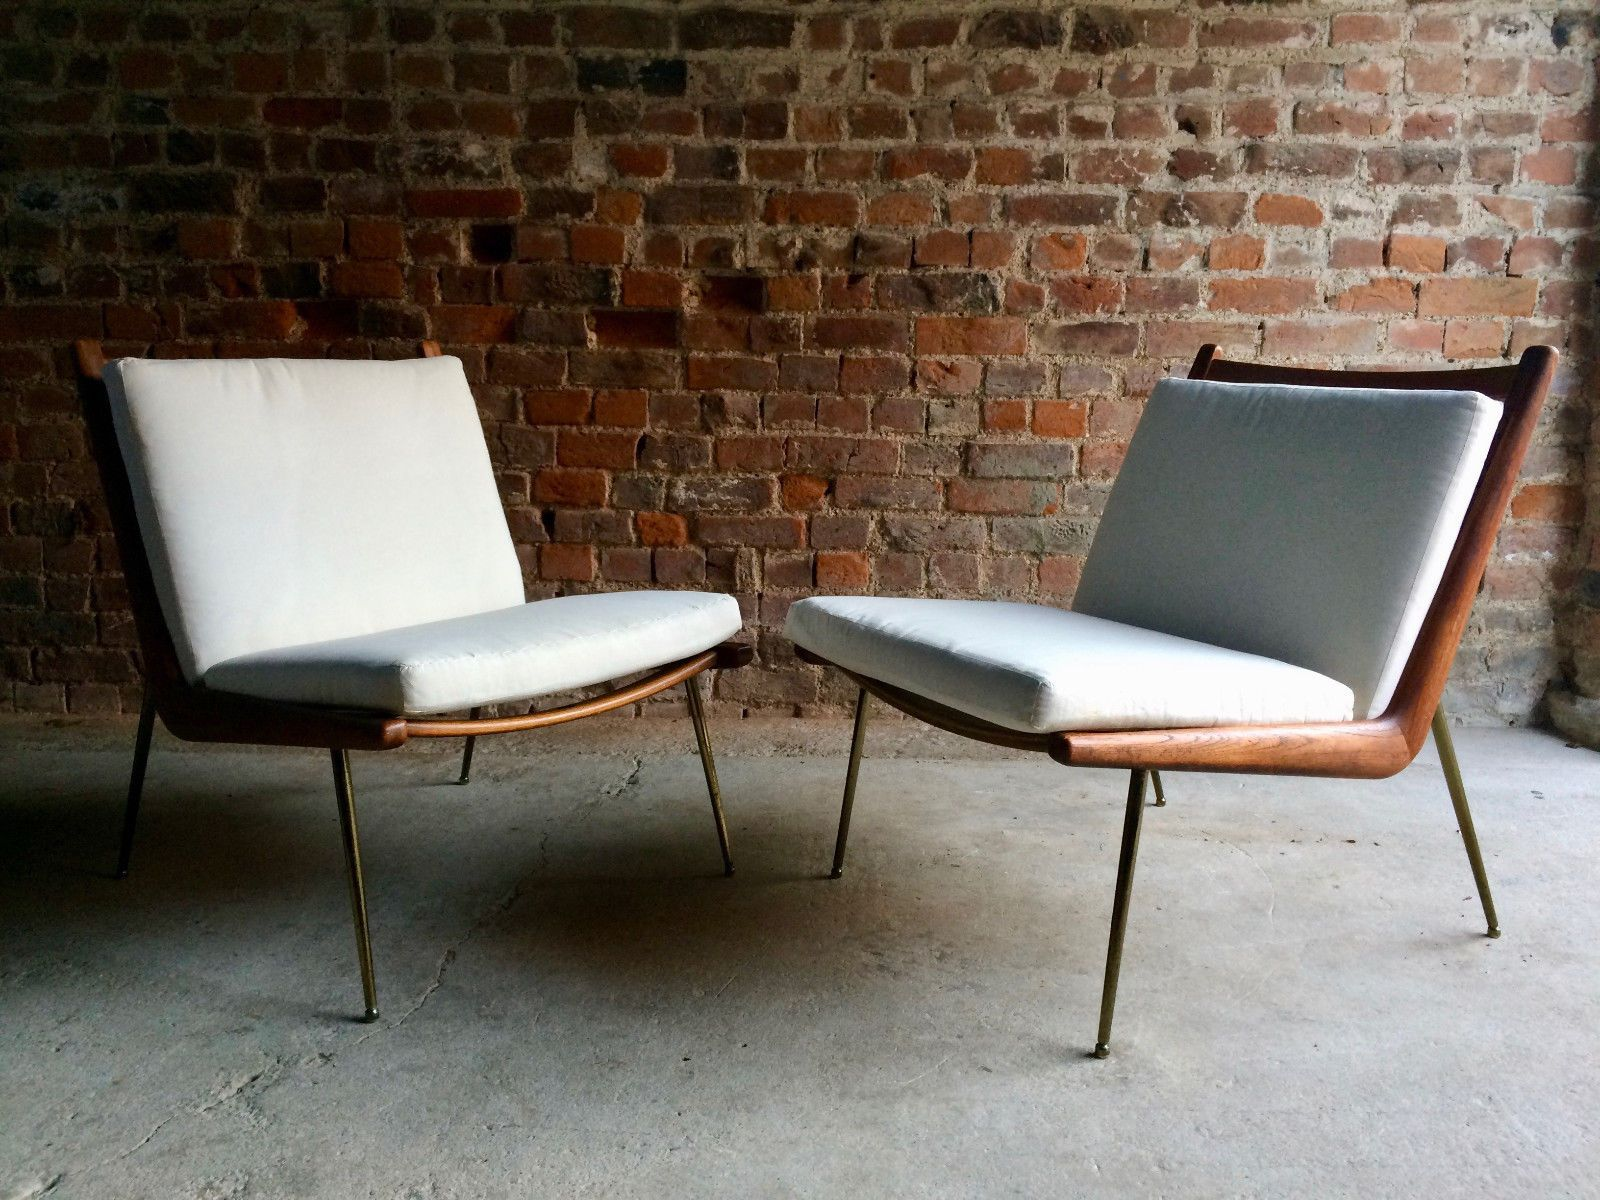 Boomerang Chairs by Peter Hvidt & Orla Molgaard Nielsen for France